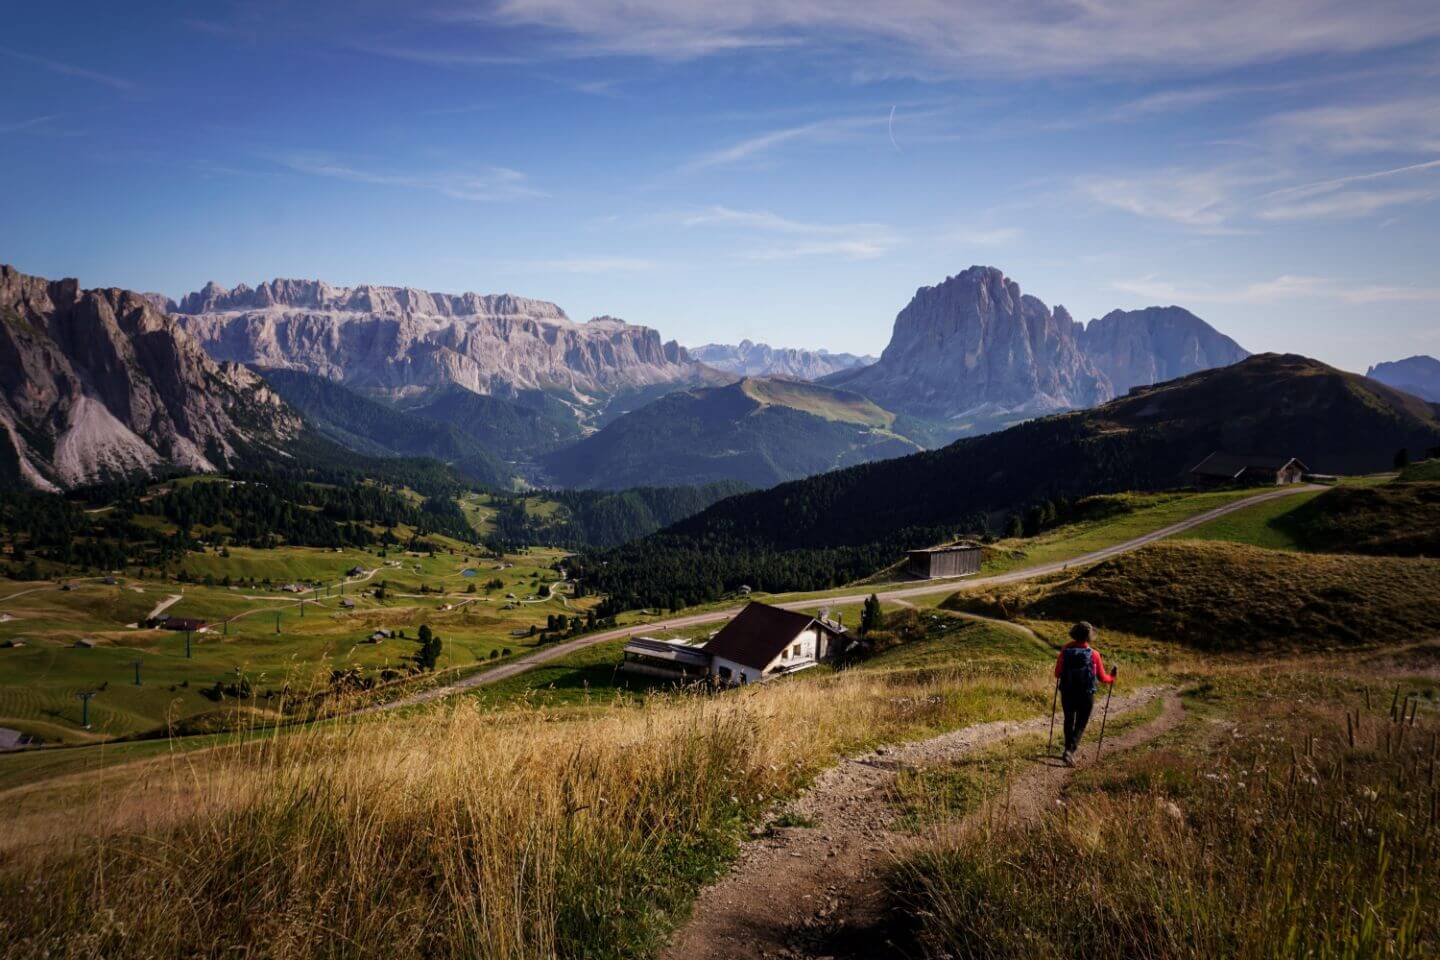 Dolomites Travel Guide - Plan your trip to the Dolomites